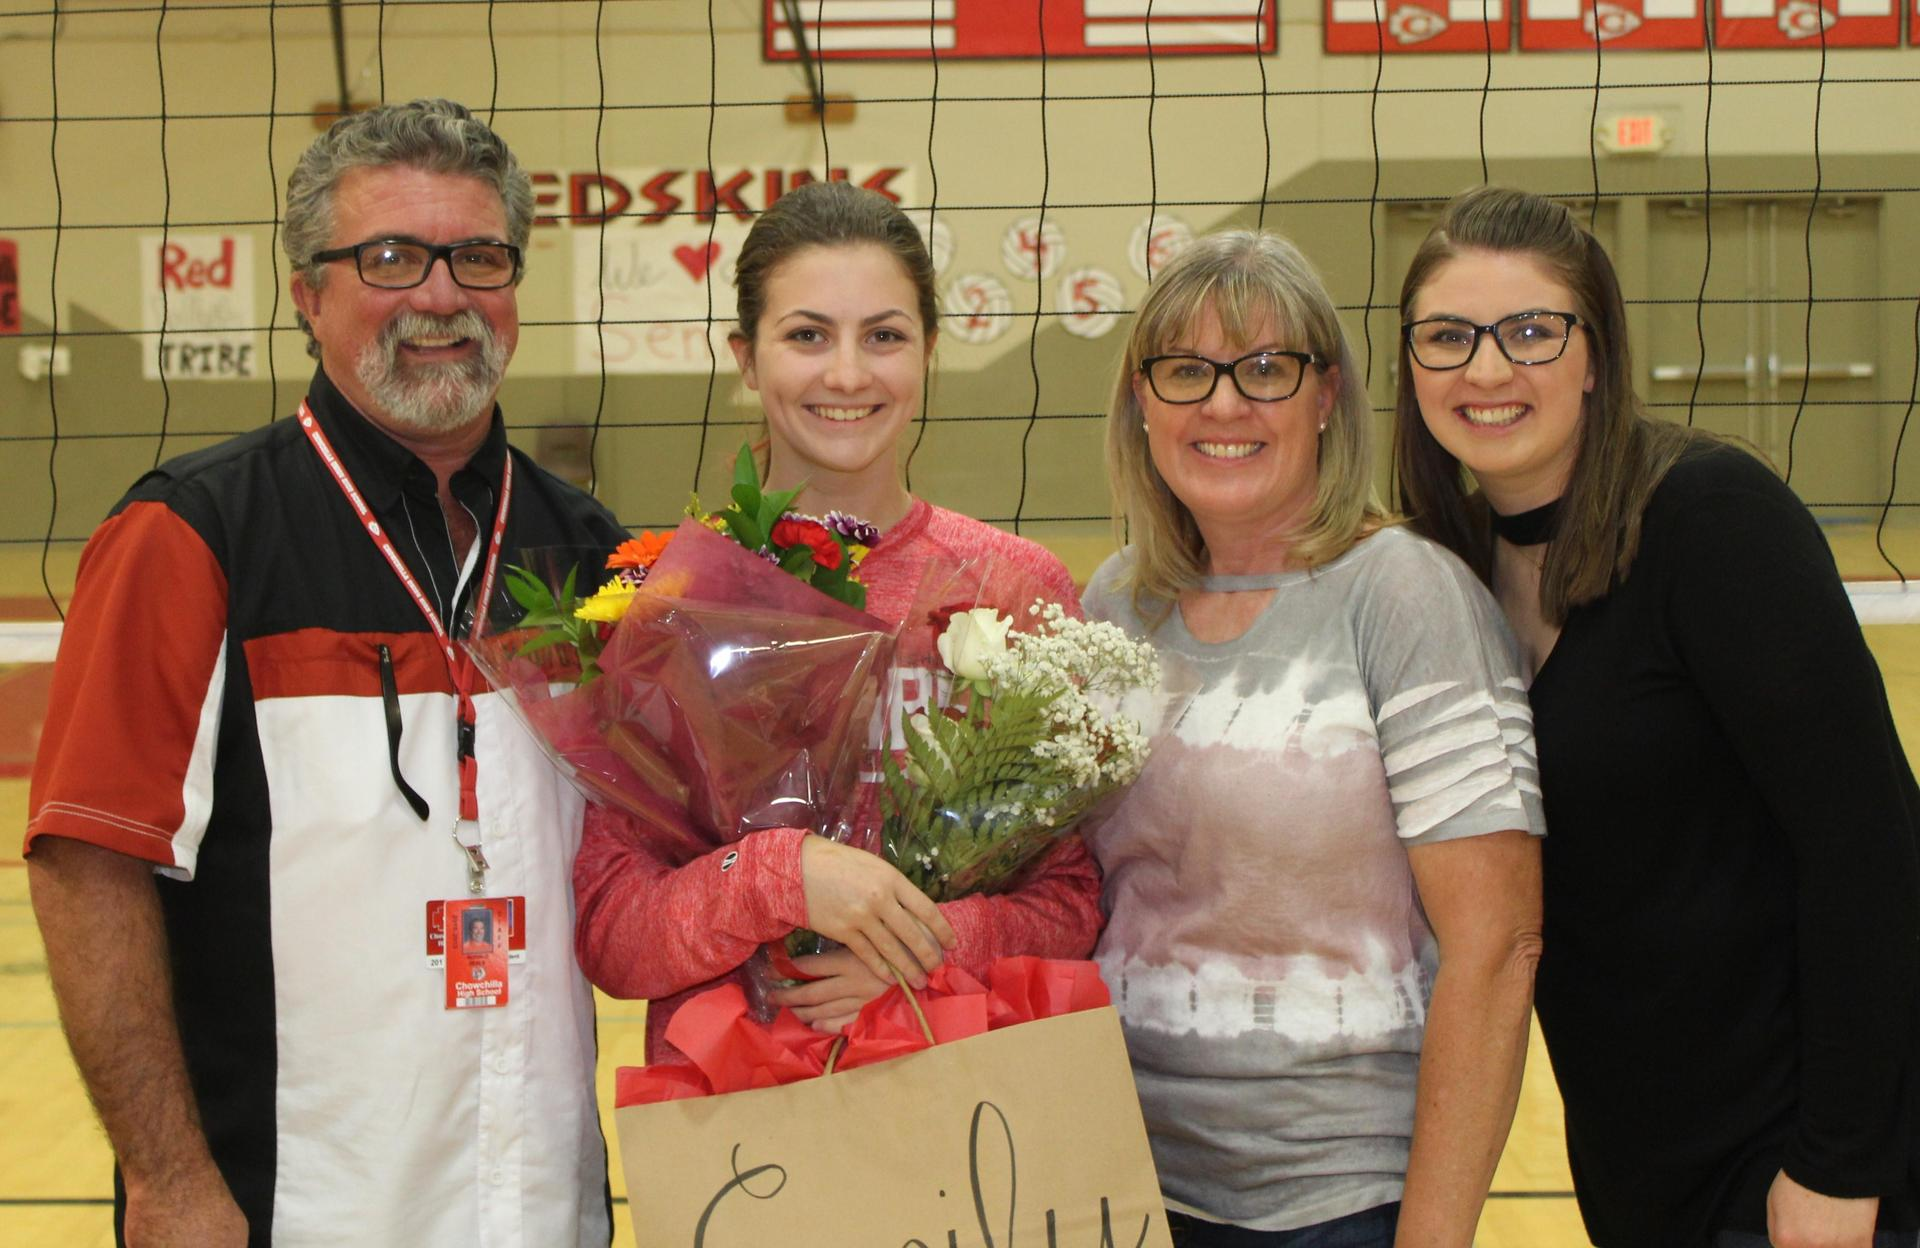 Emily Seals and Coach Shelby Seals with their parents on Volleyball Senior Night.